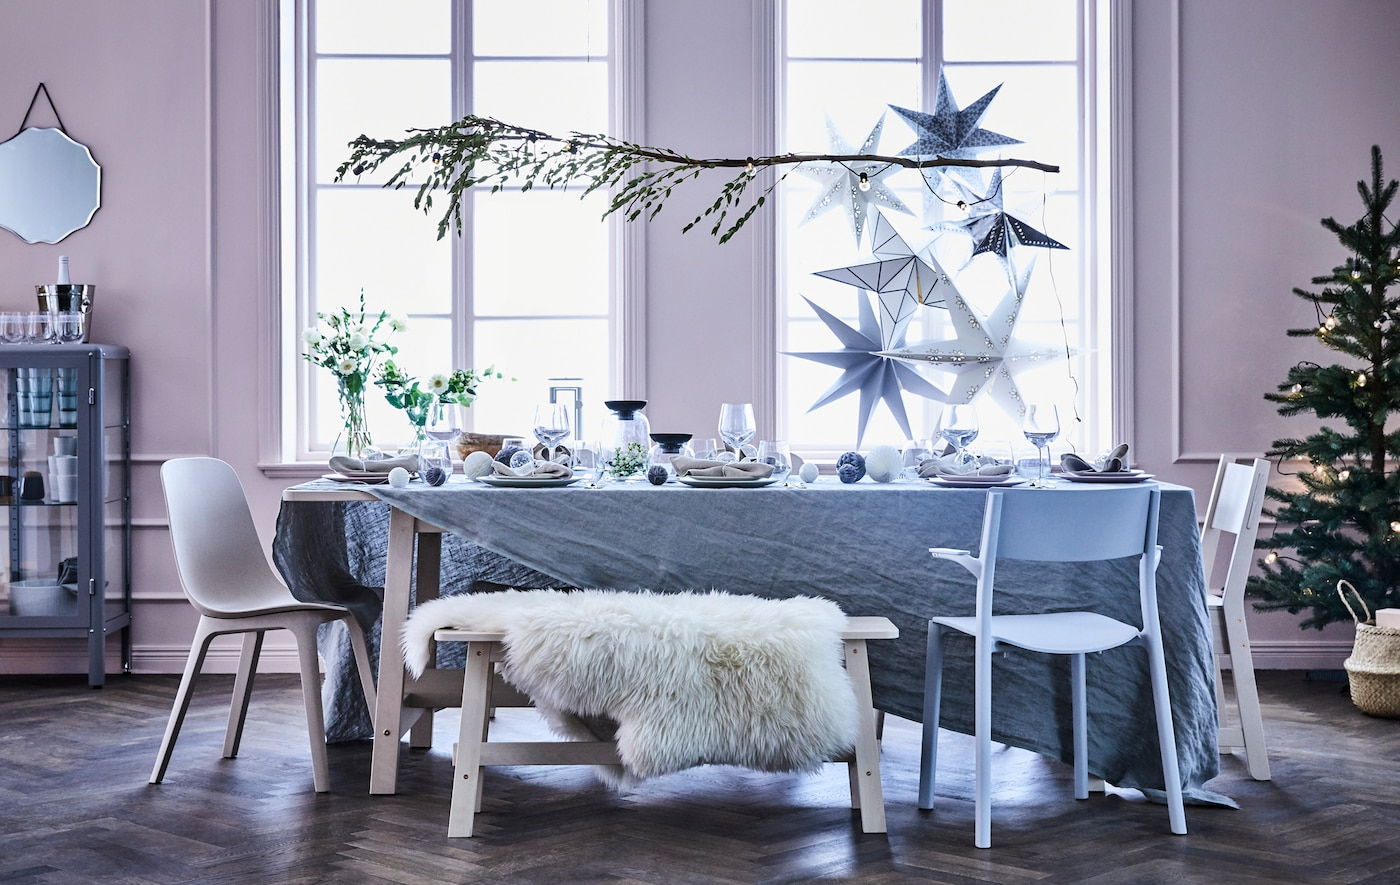 A set dining table with a bench and different chairs, over the table hangs a branch decorated with a lighting chain.